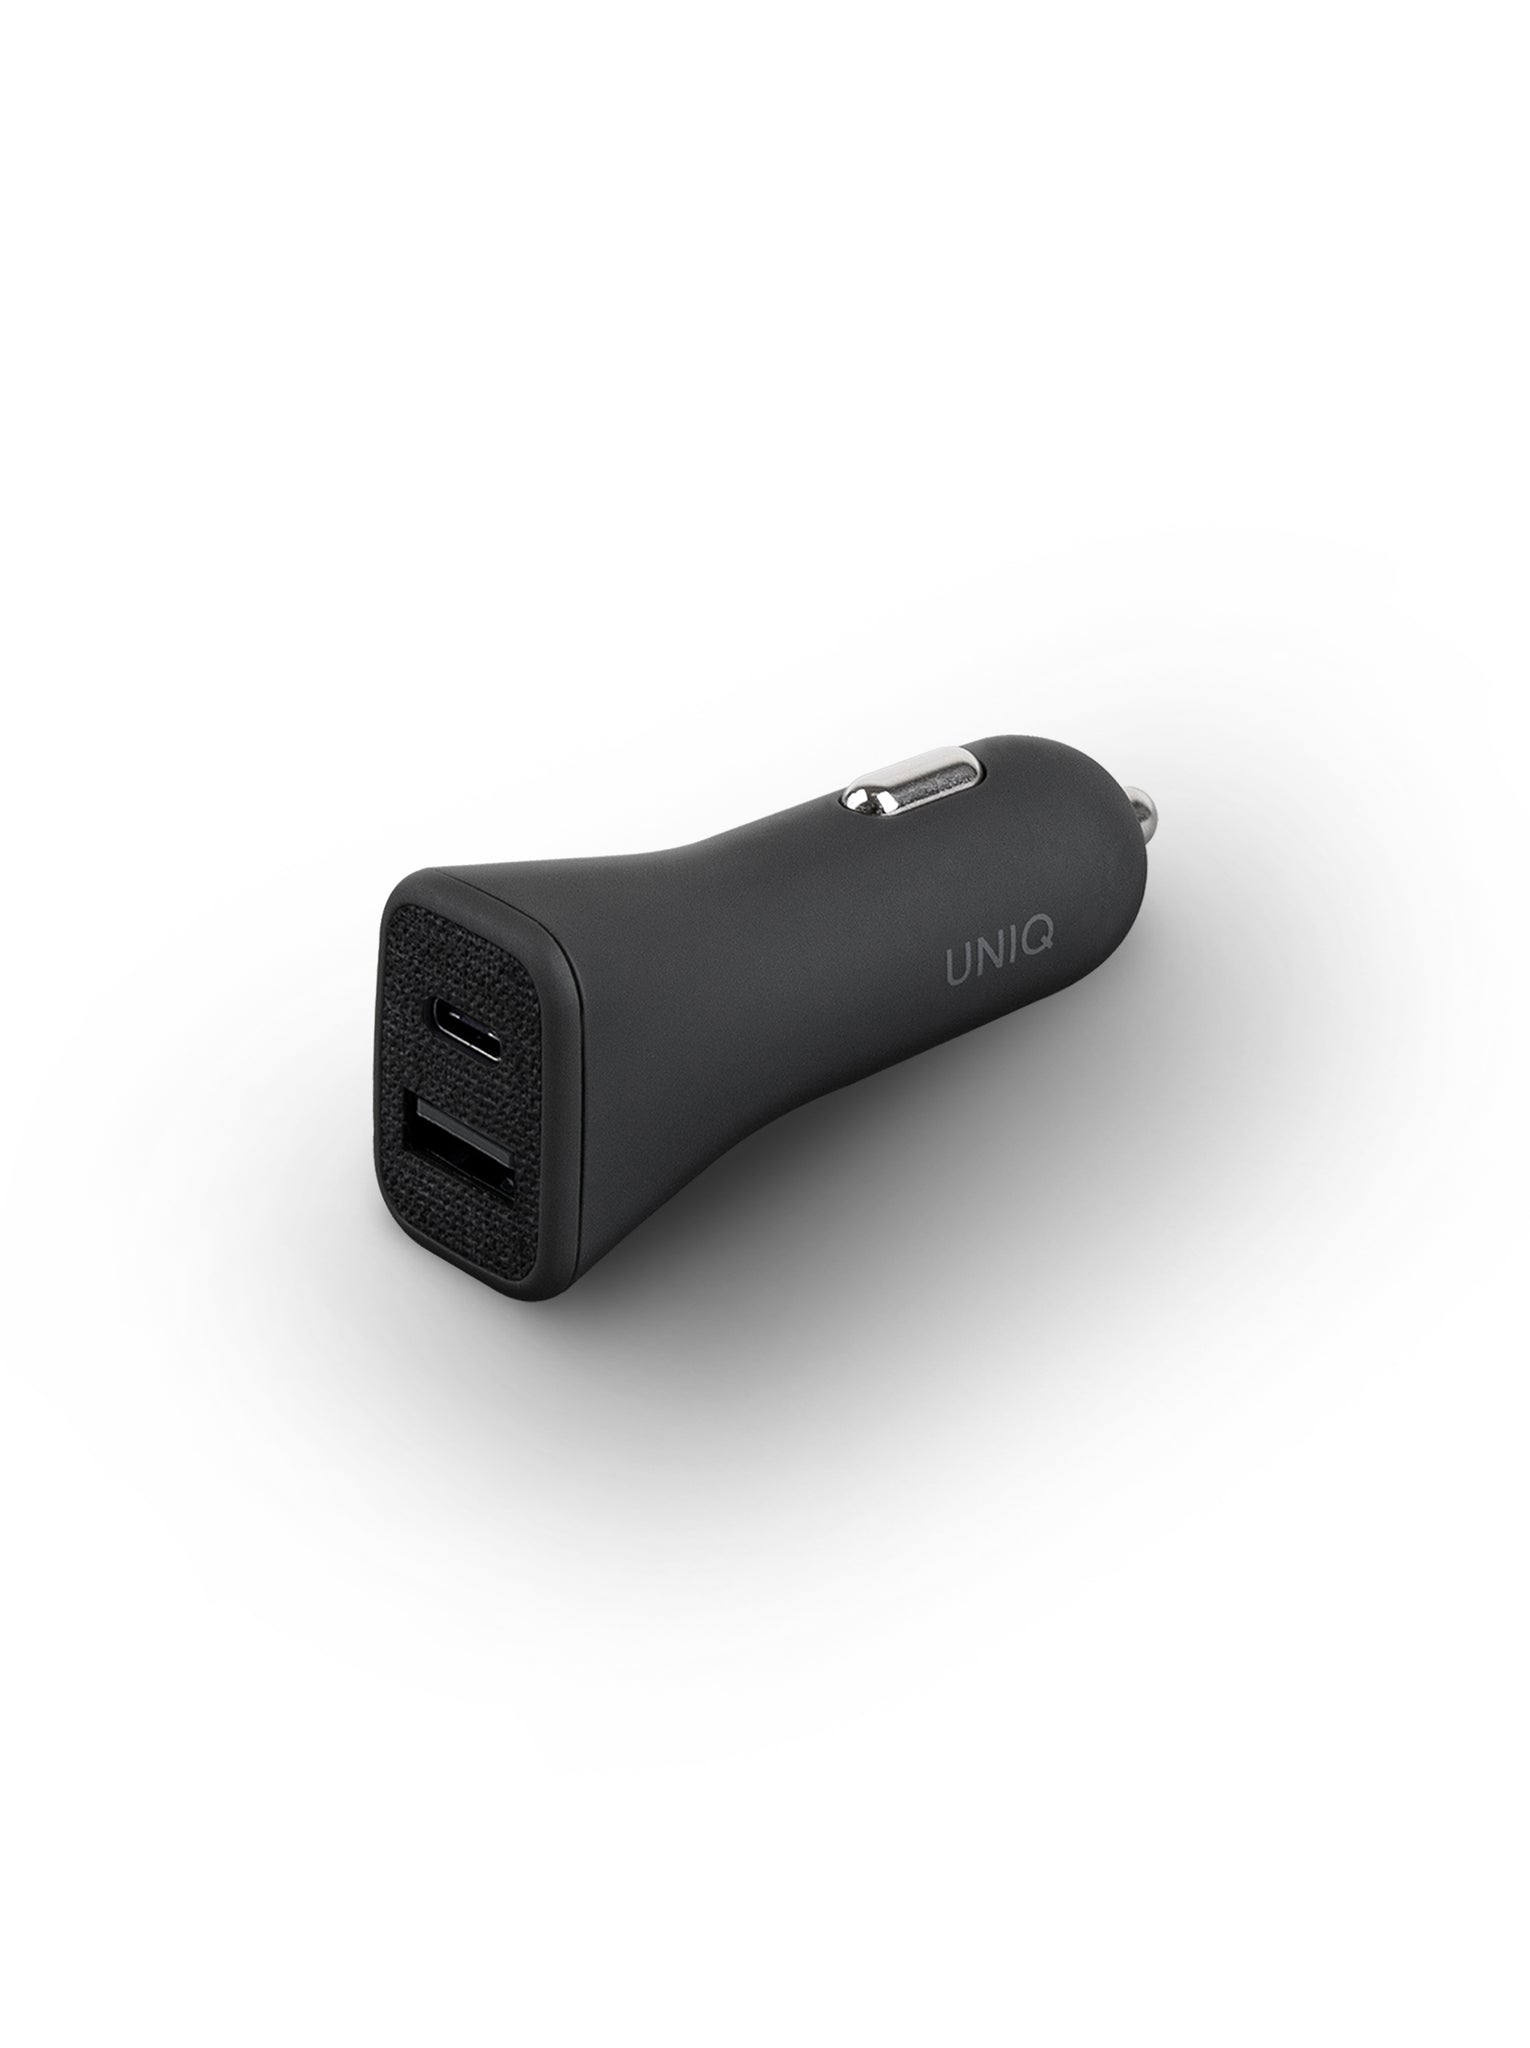 Uniq Votra Duo 30w Car Charger with USB-C PD - Charcoal (Black)